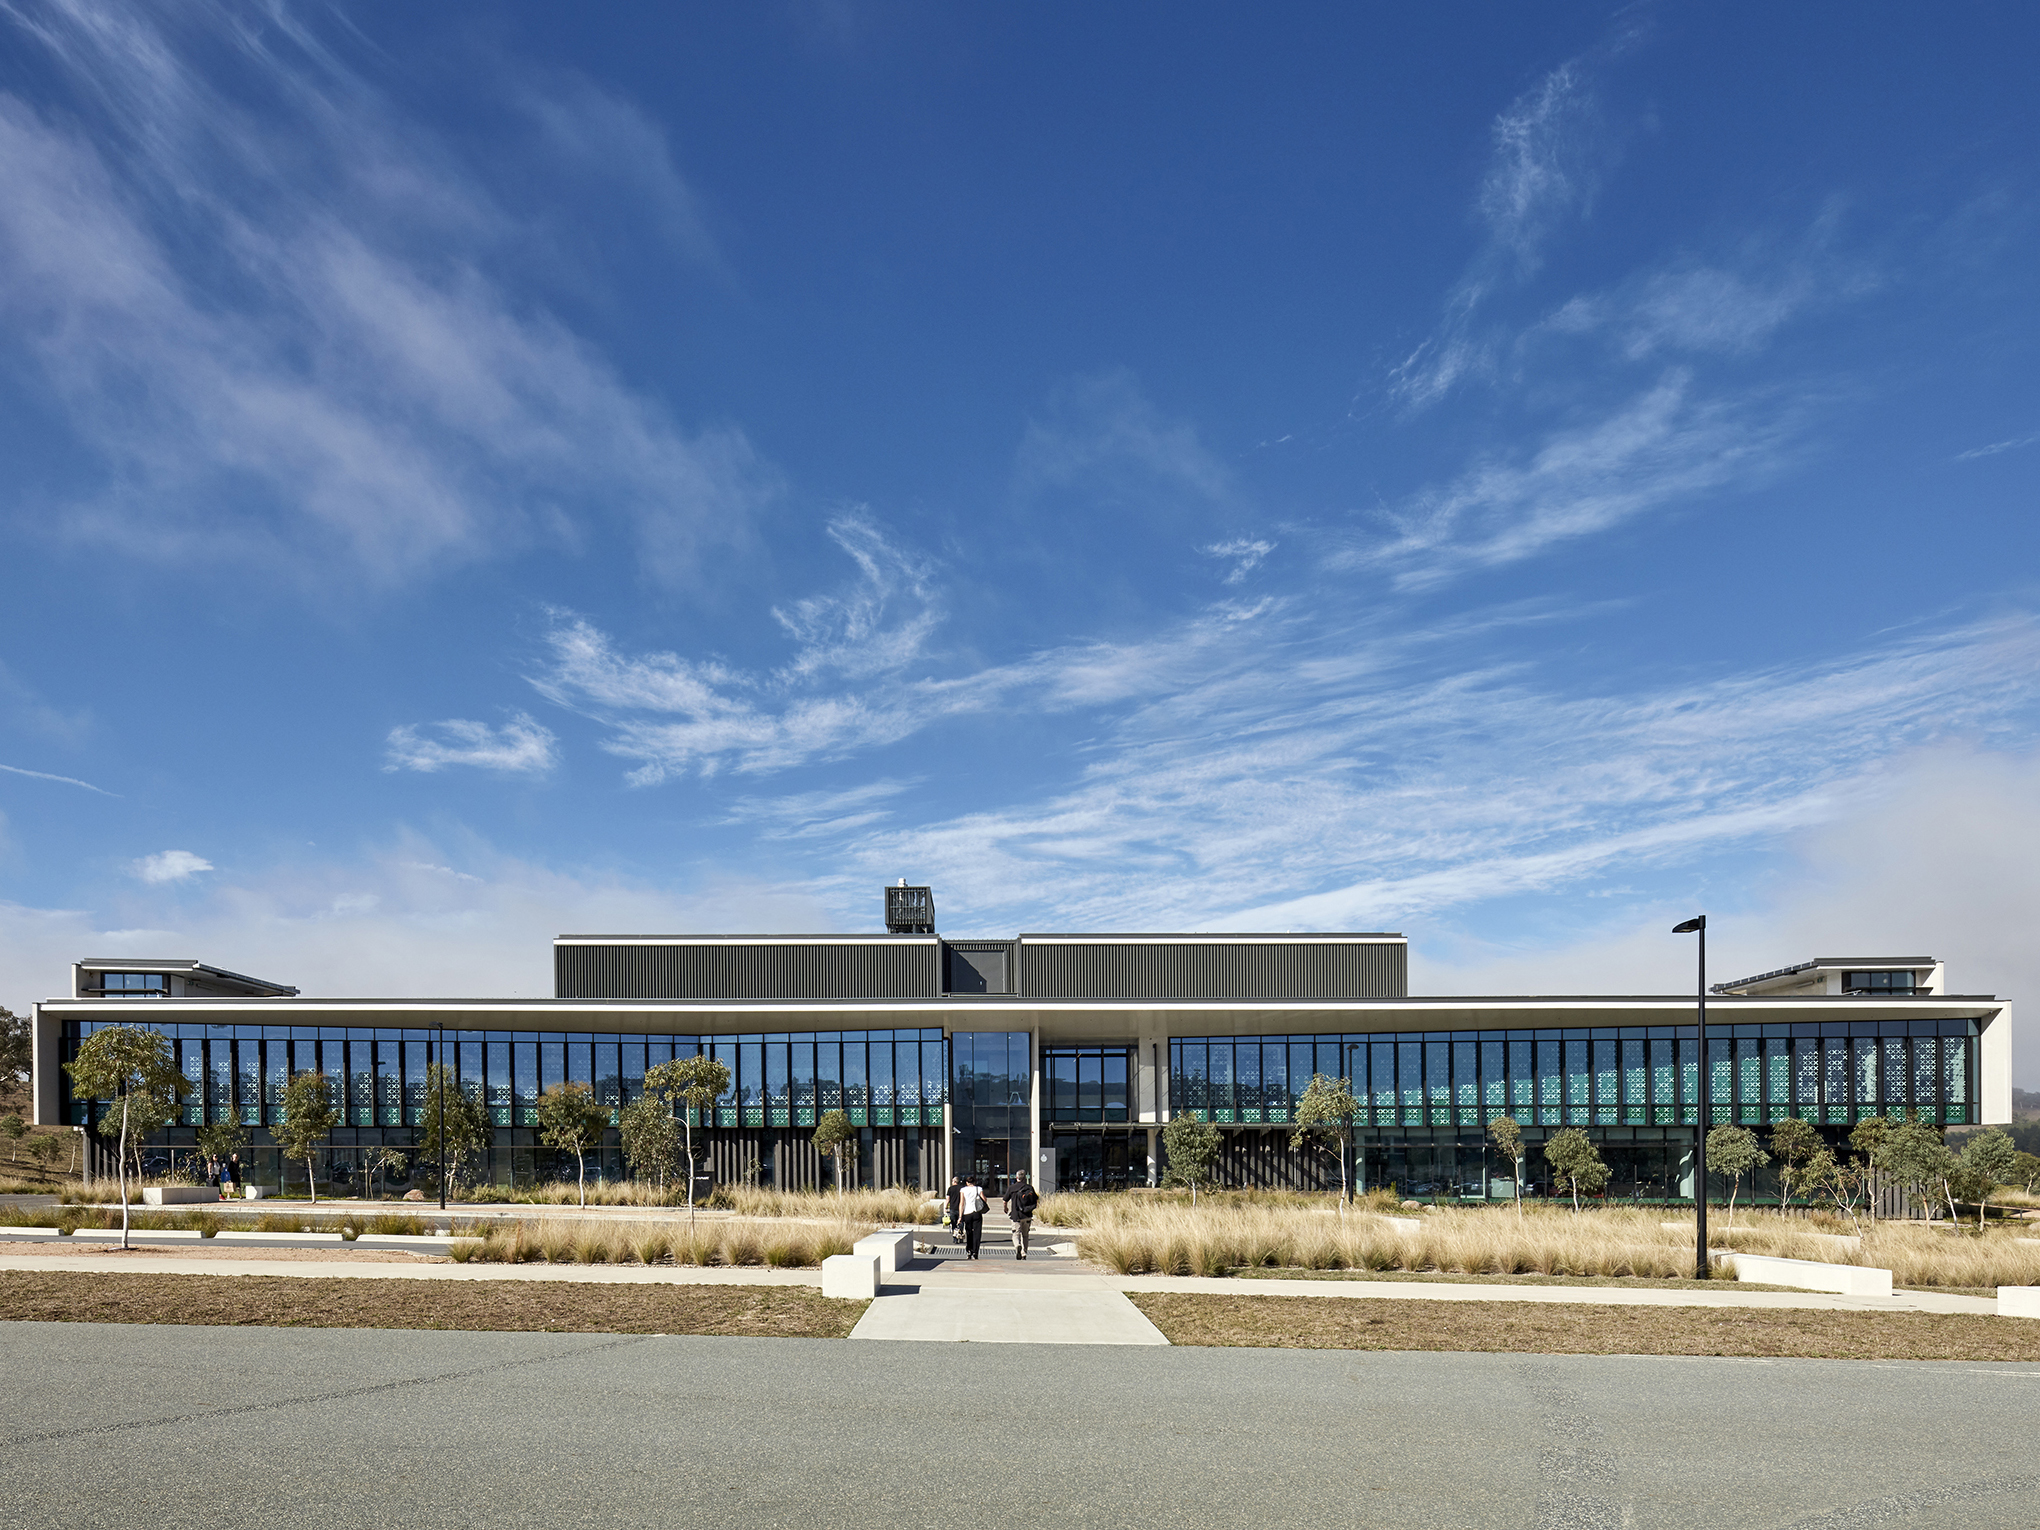 The AFP Forensics and Data Centre. Photography by Christopher Frederick Jones